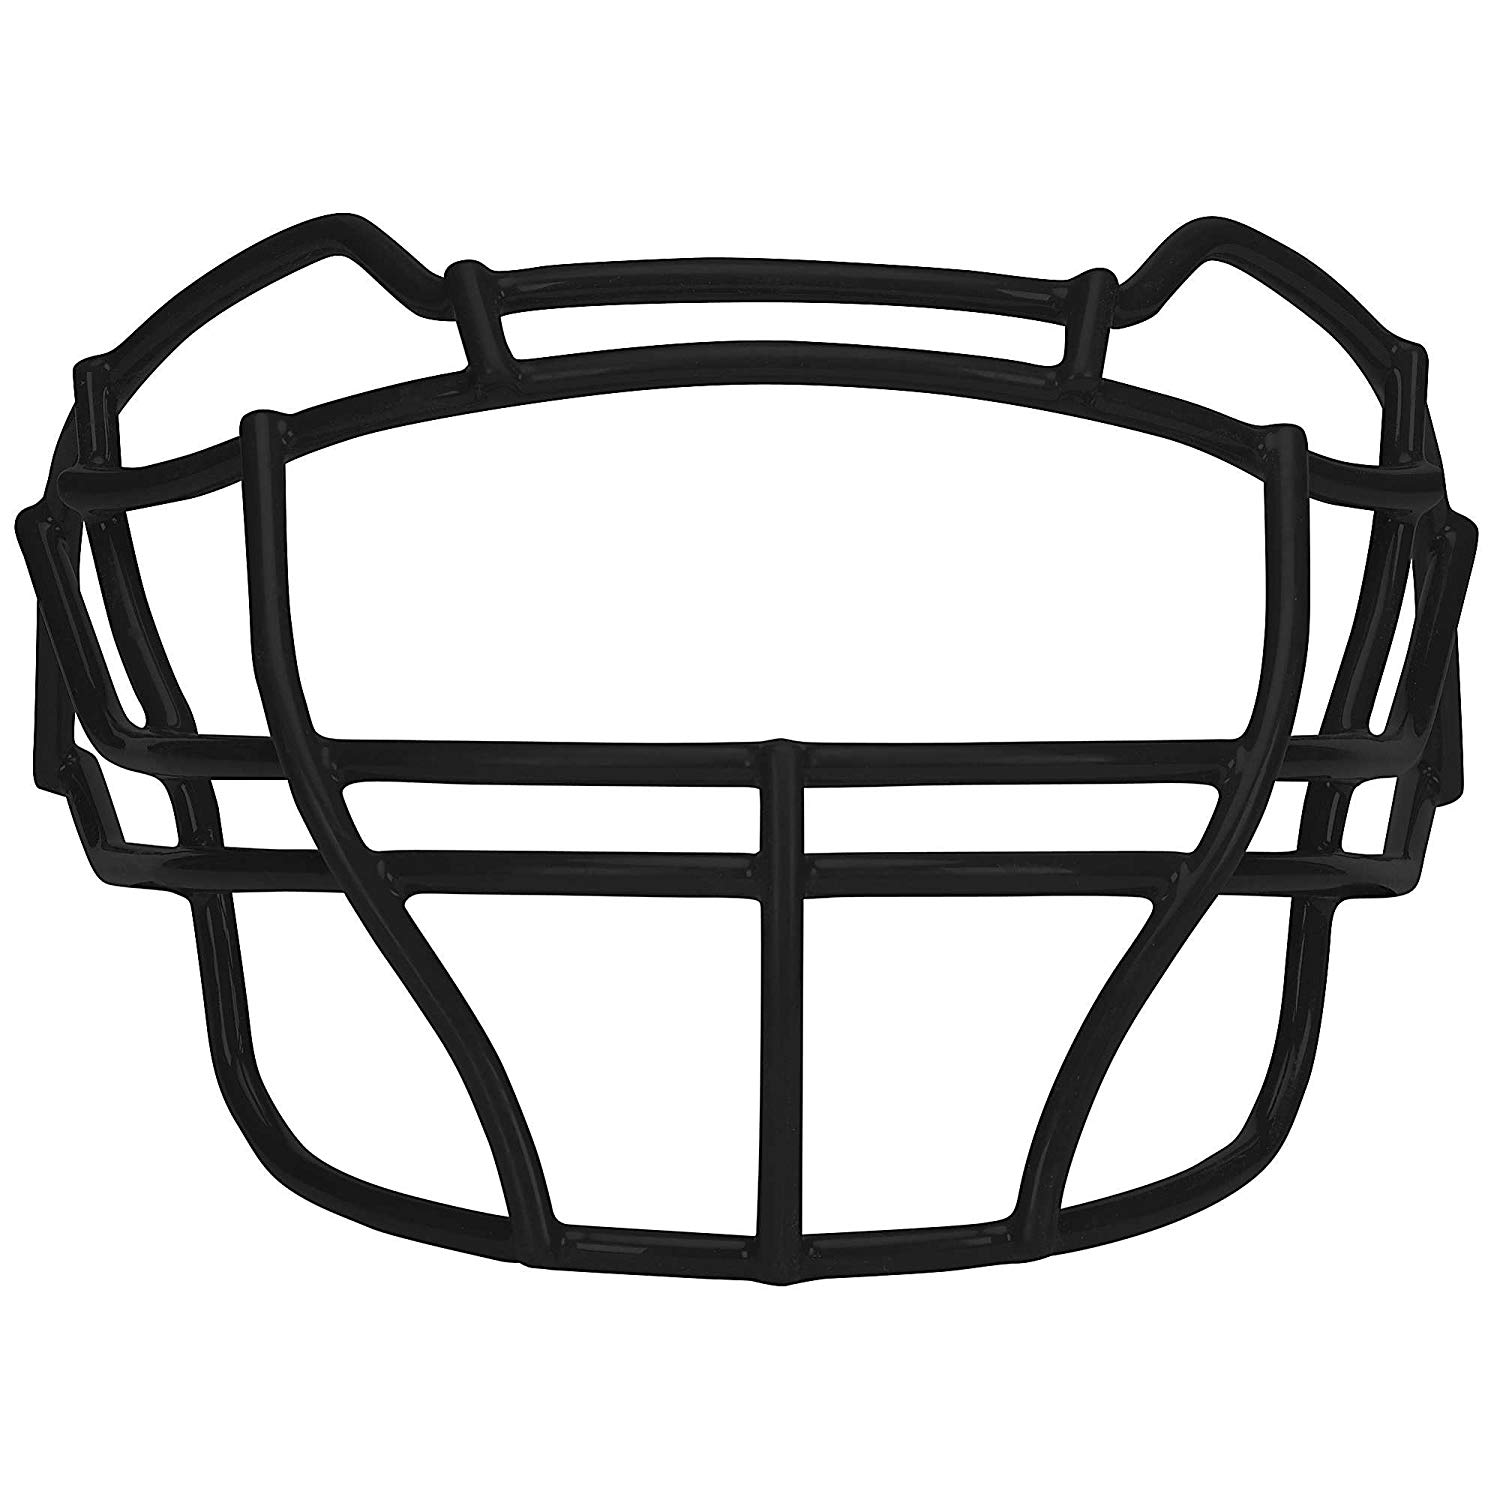 Carbon Steel Football Faceguard, White- Schutt Sports - Football Masks